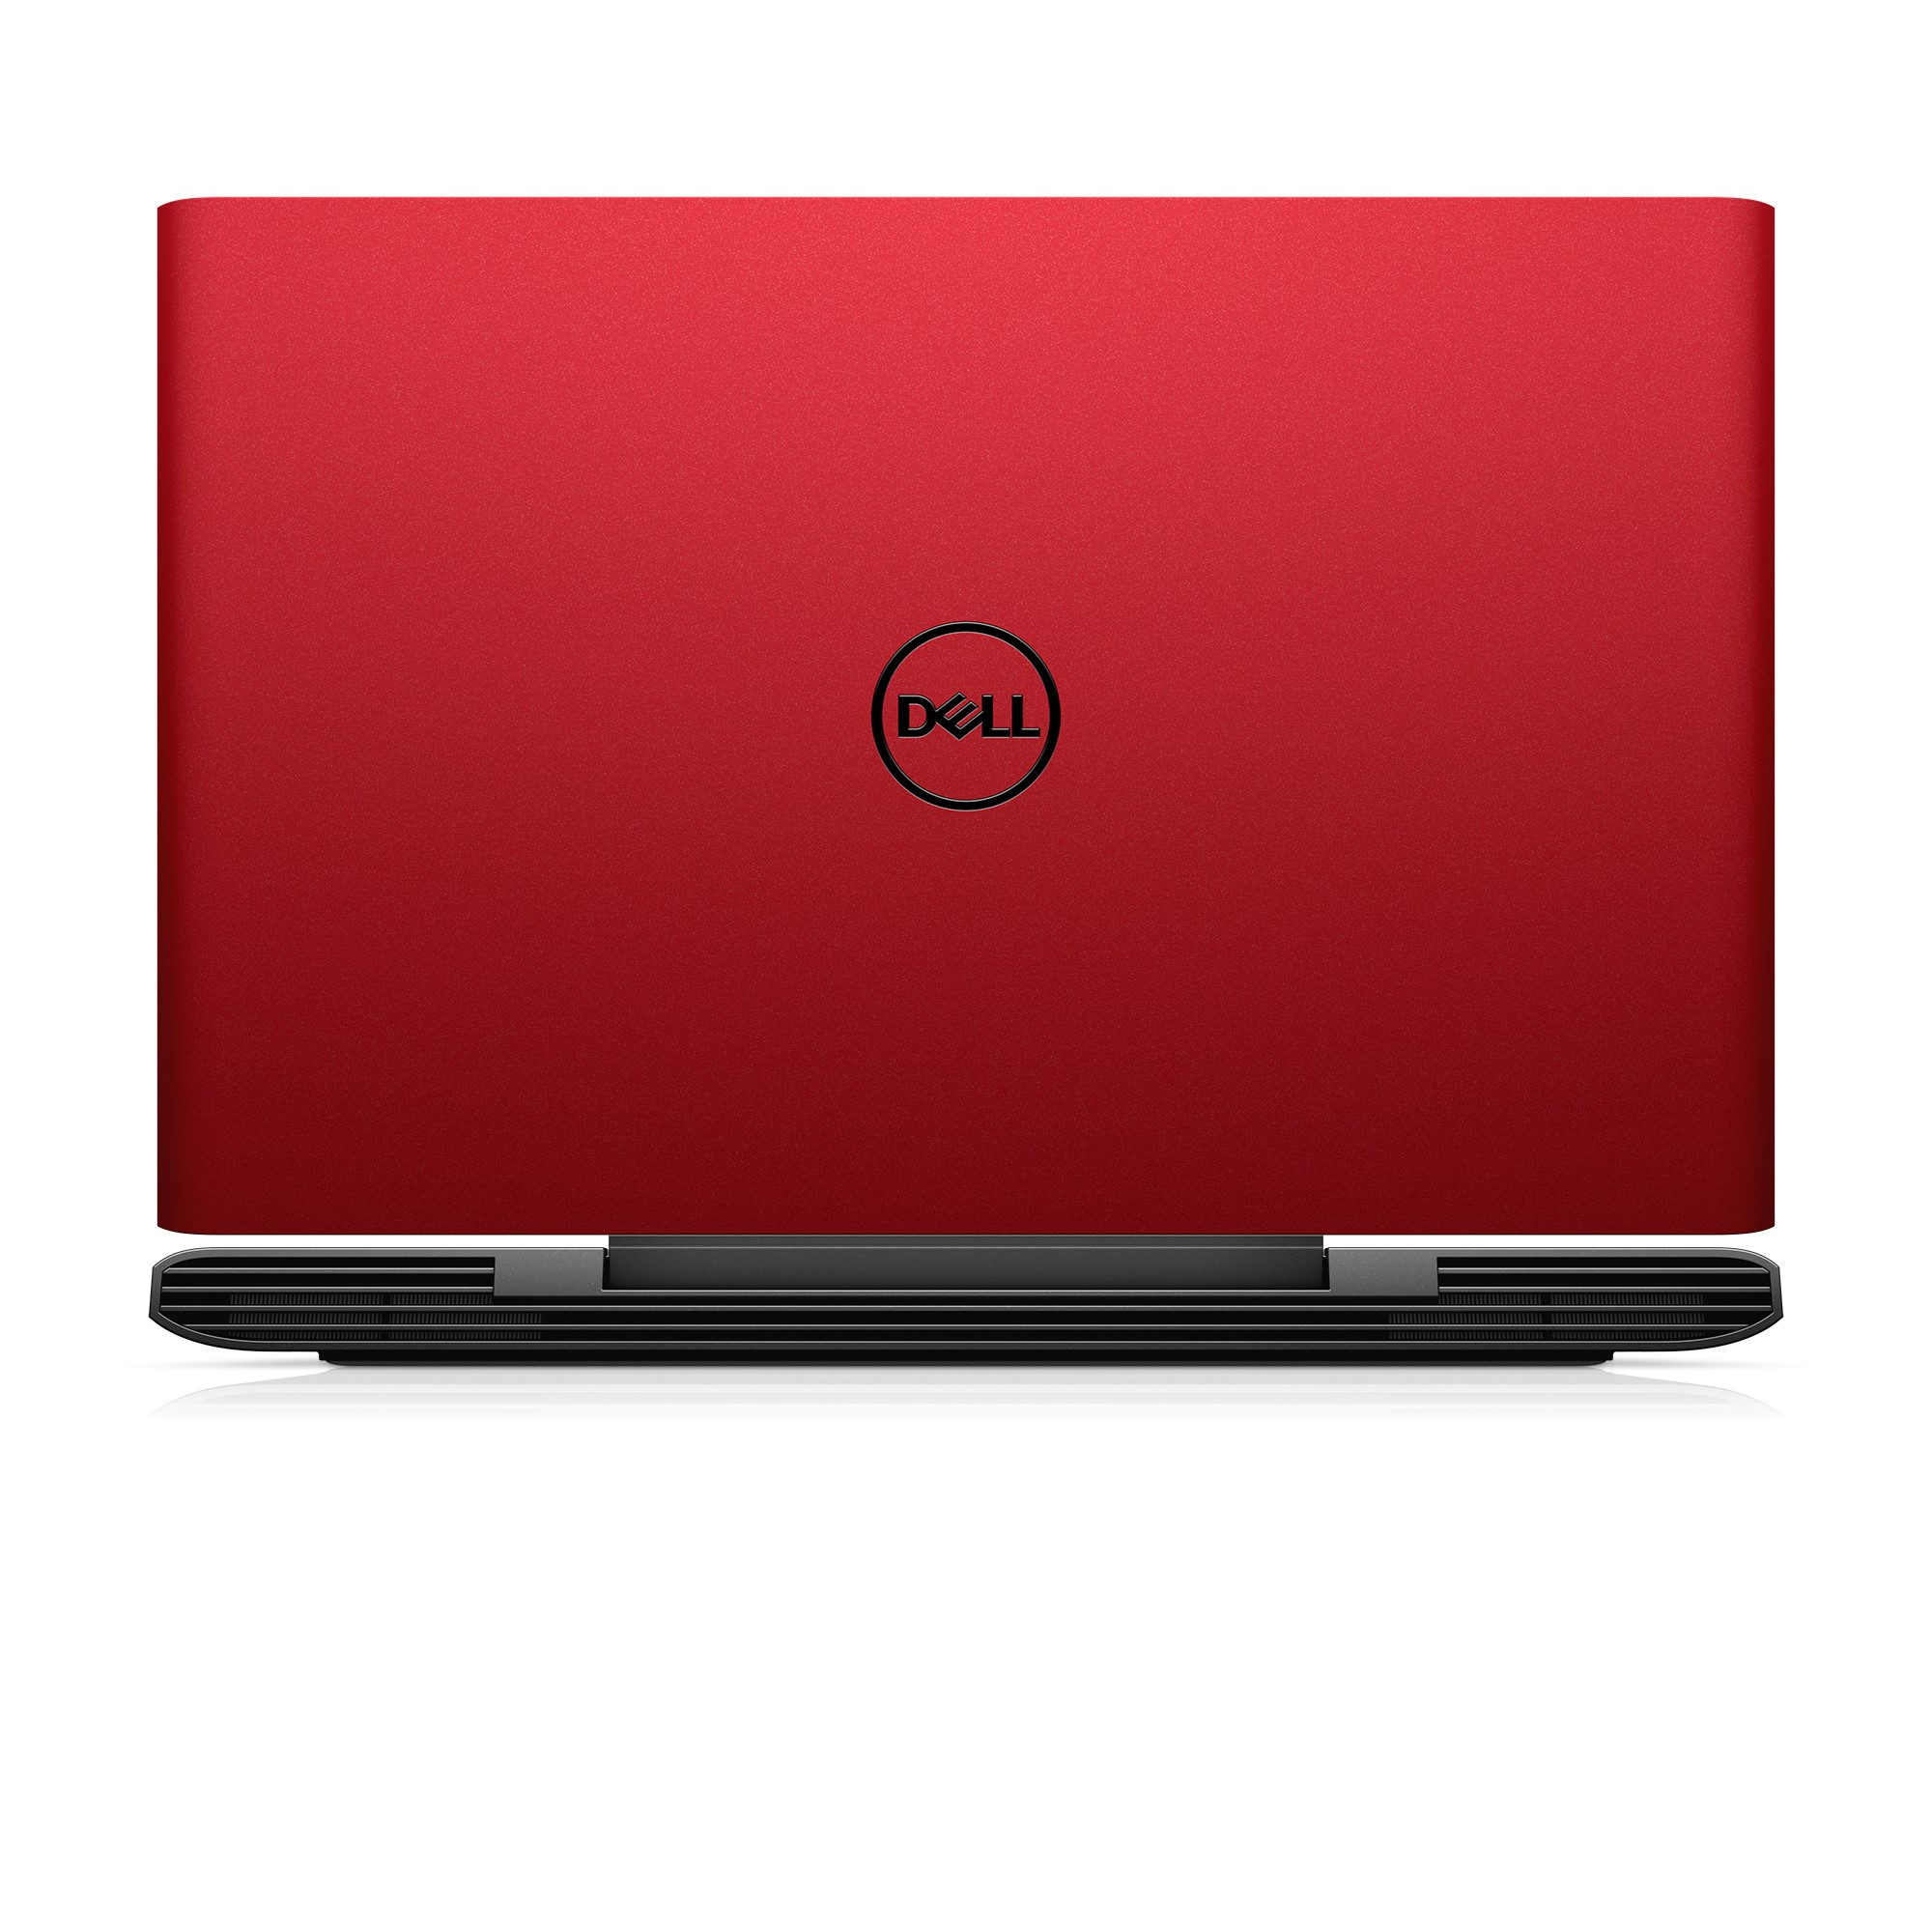 Dell G5 Gaming Laptop 15 6